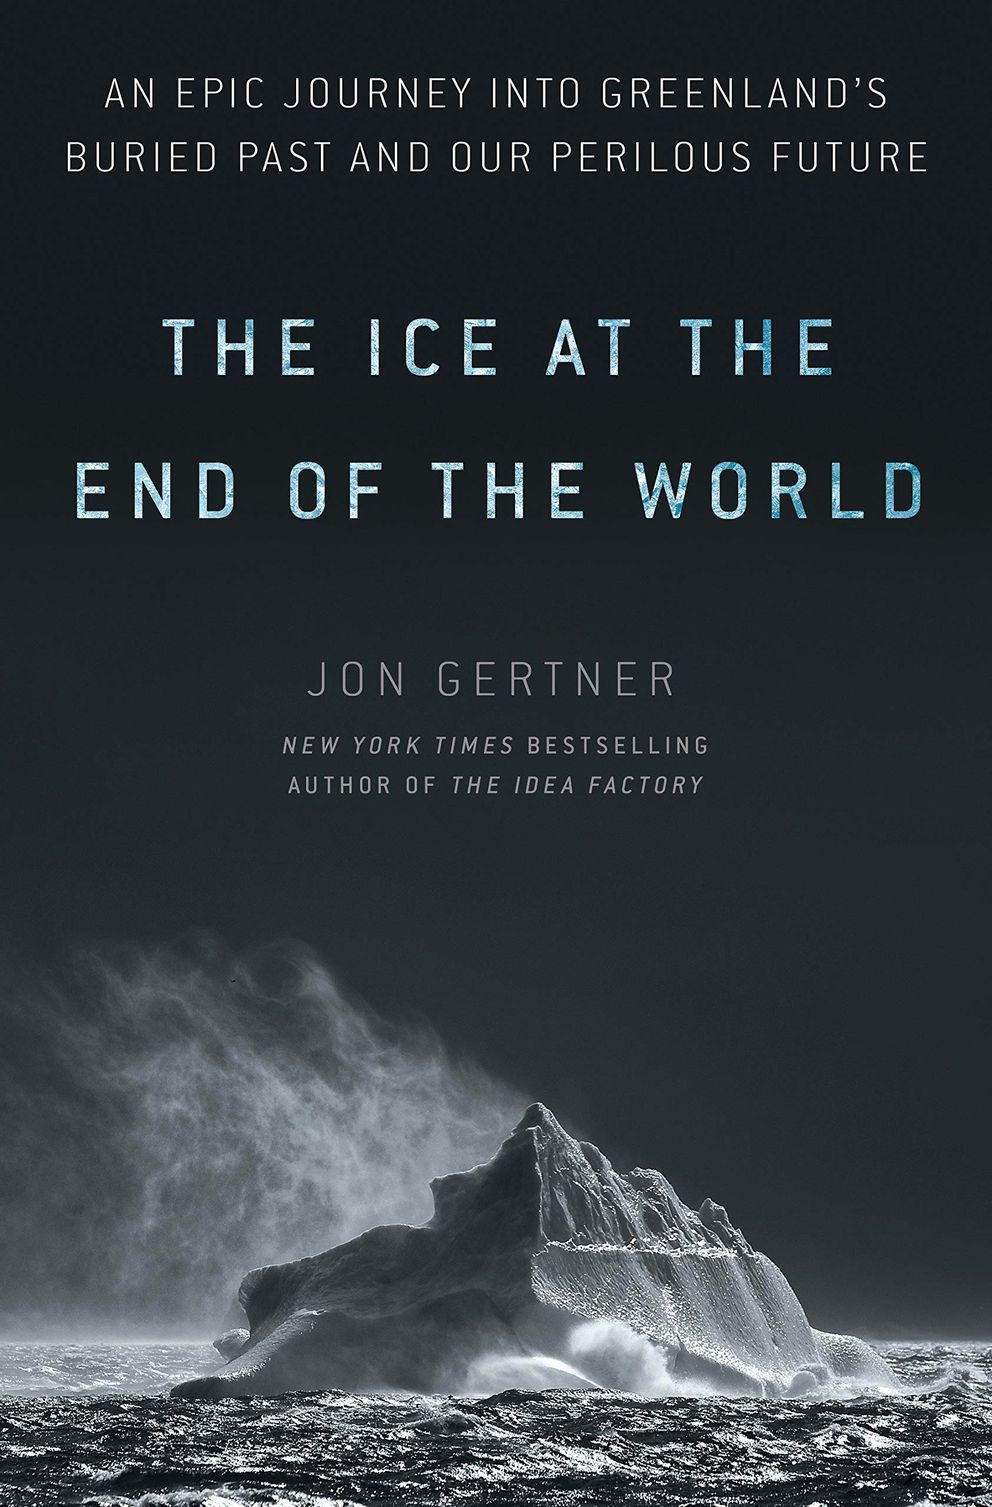 'The Ice at the End of the World: An Epic Journey into Greenland's Buried Past and our Perilous Future, ' Jon Gertner